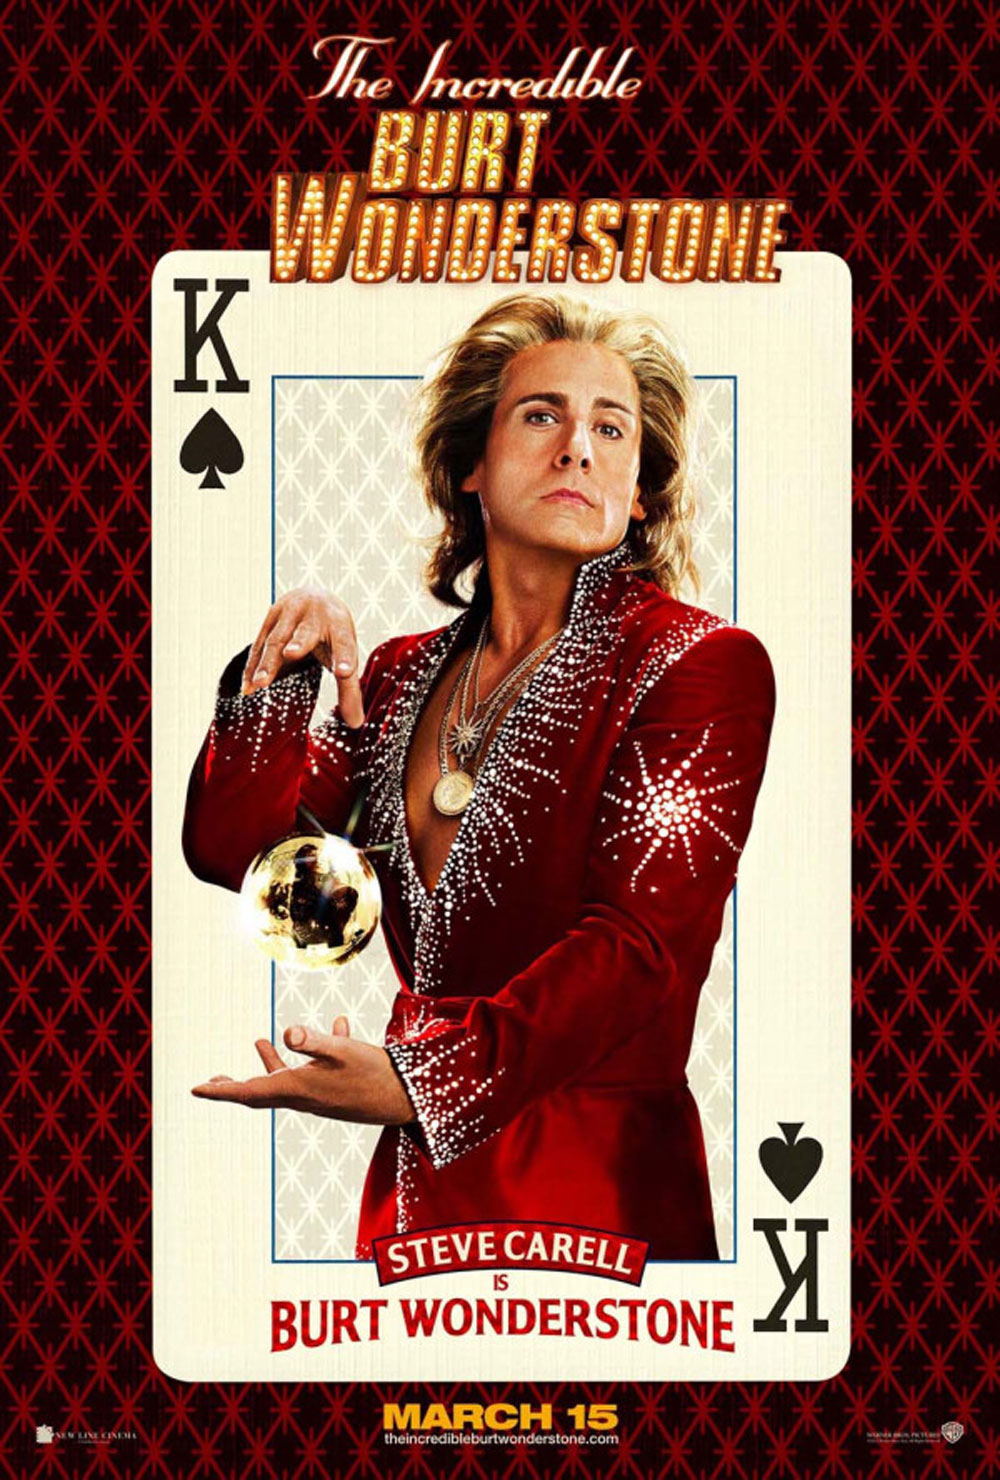 Review: The Incredible Burt Wonderstone – It's Kinda Magic